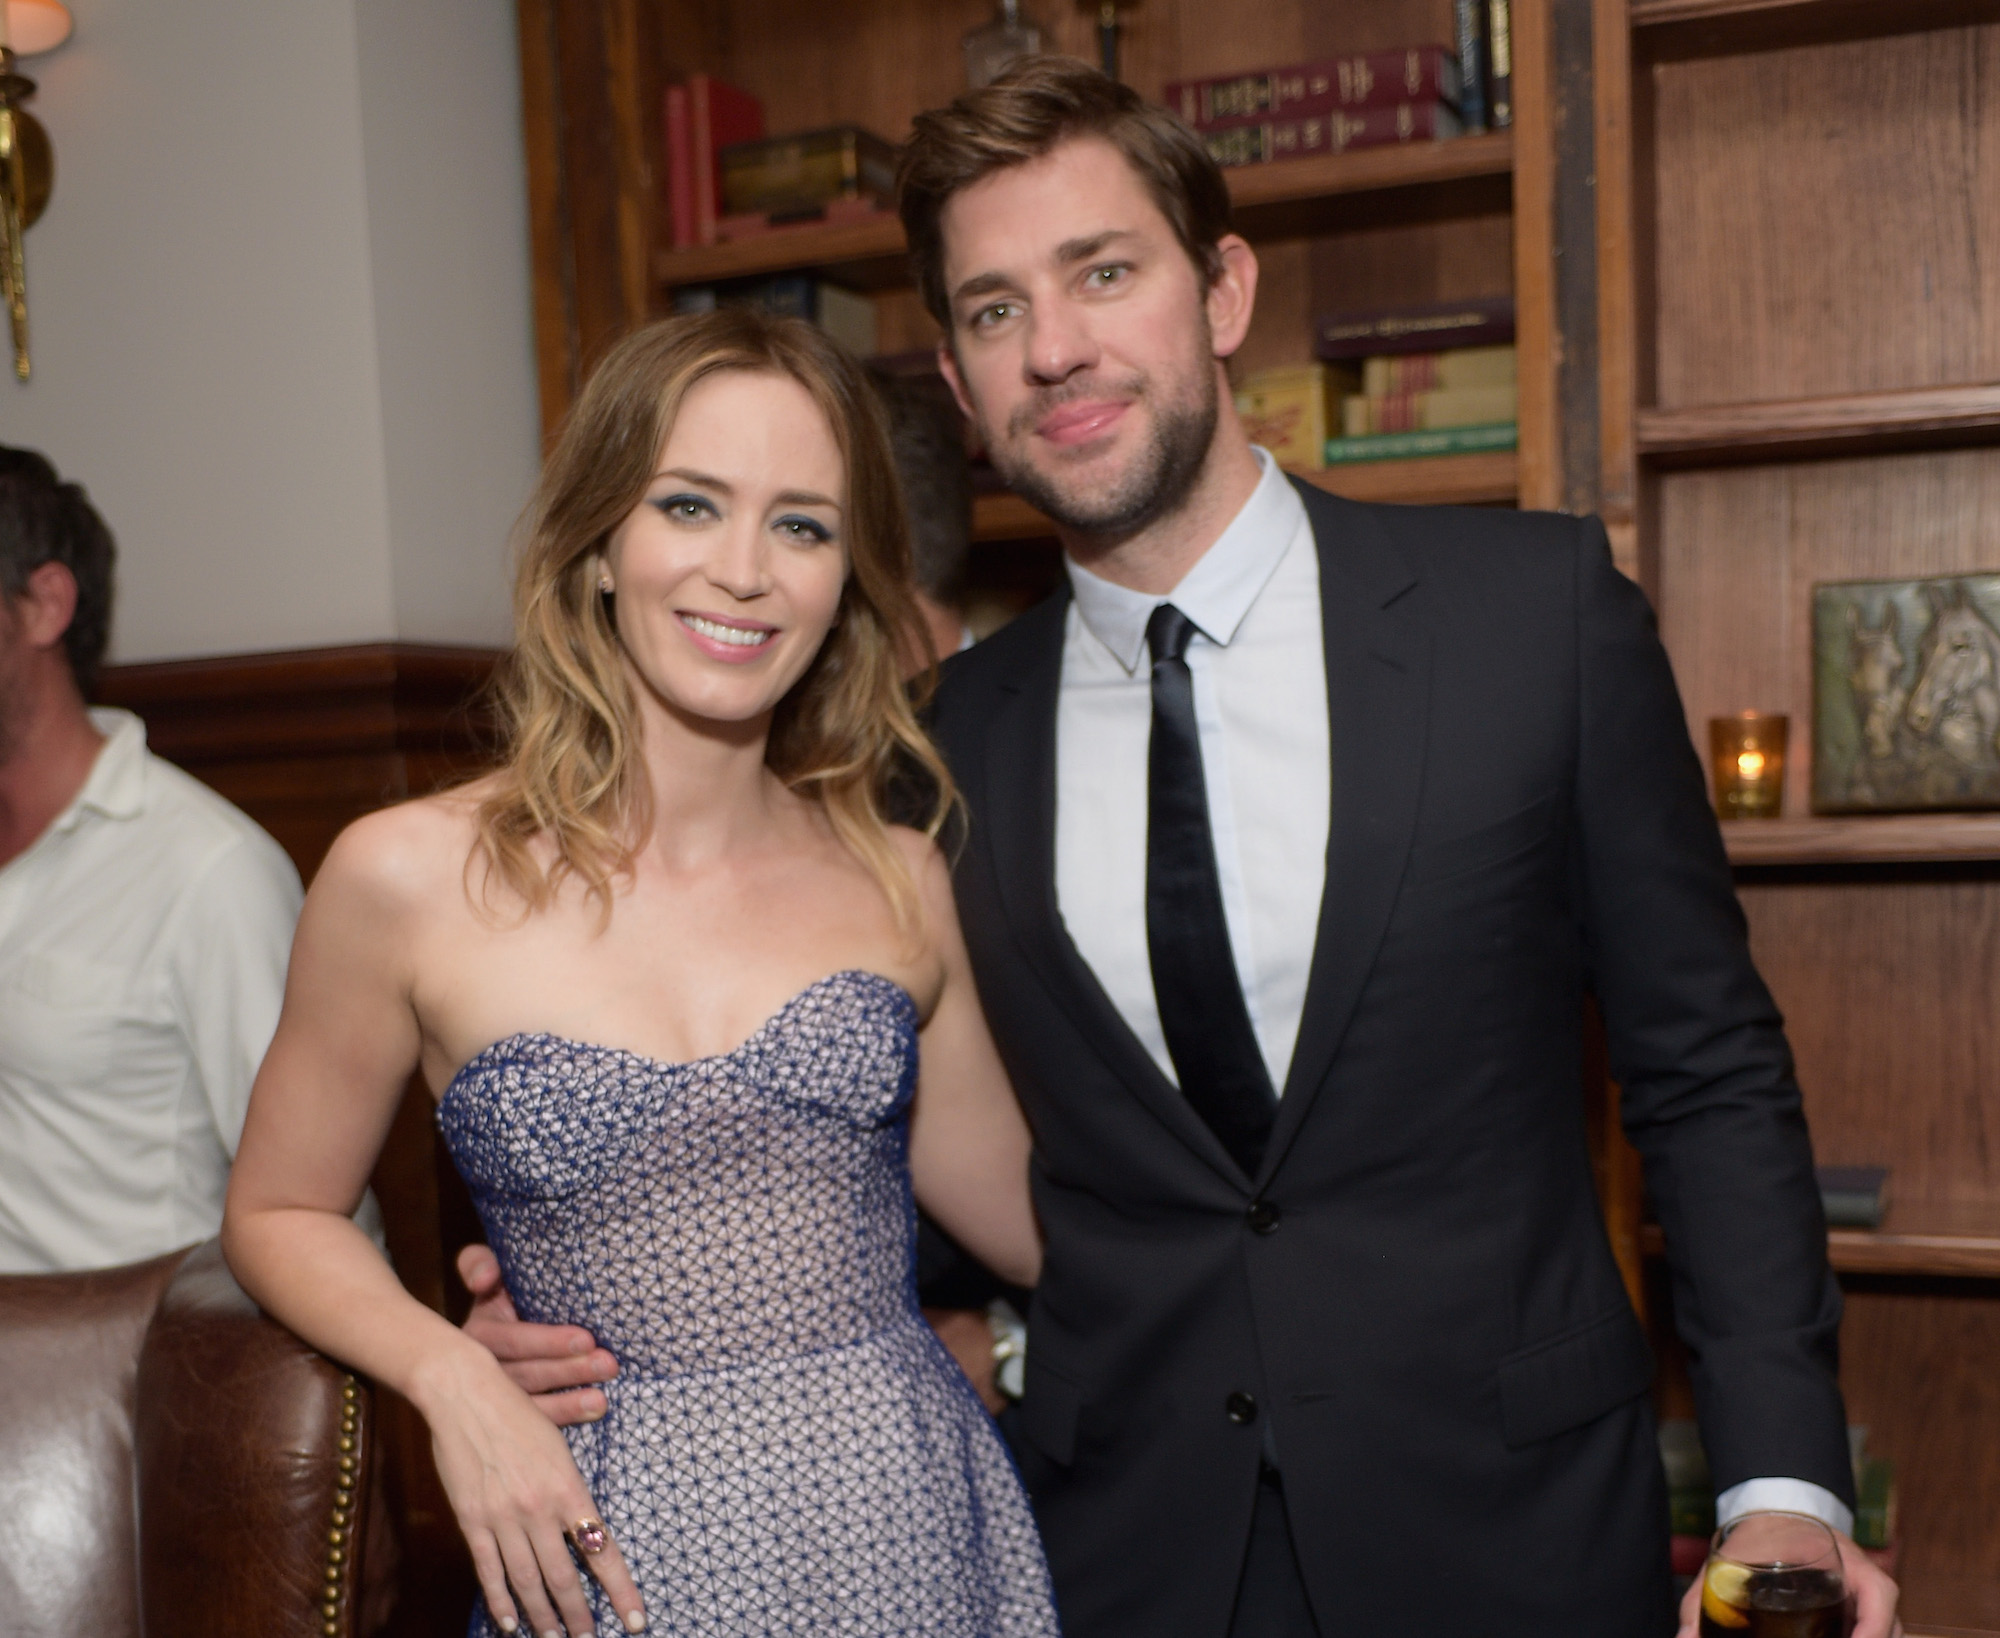 Emily Blunt and John Krasinski lead